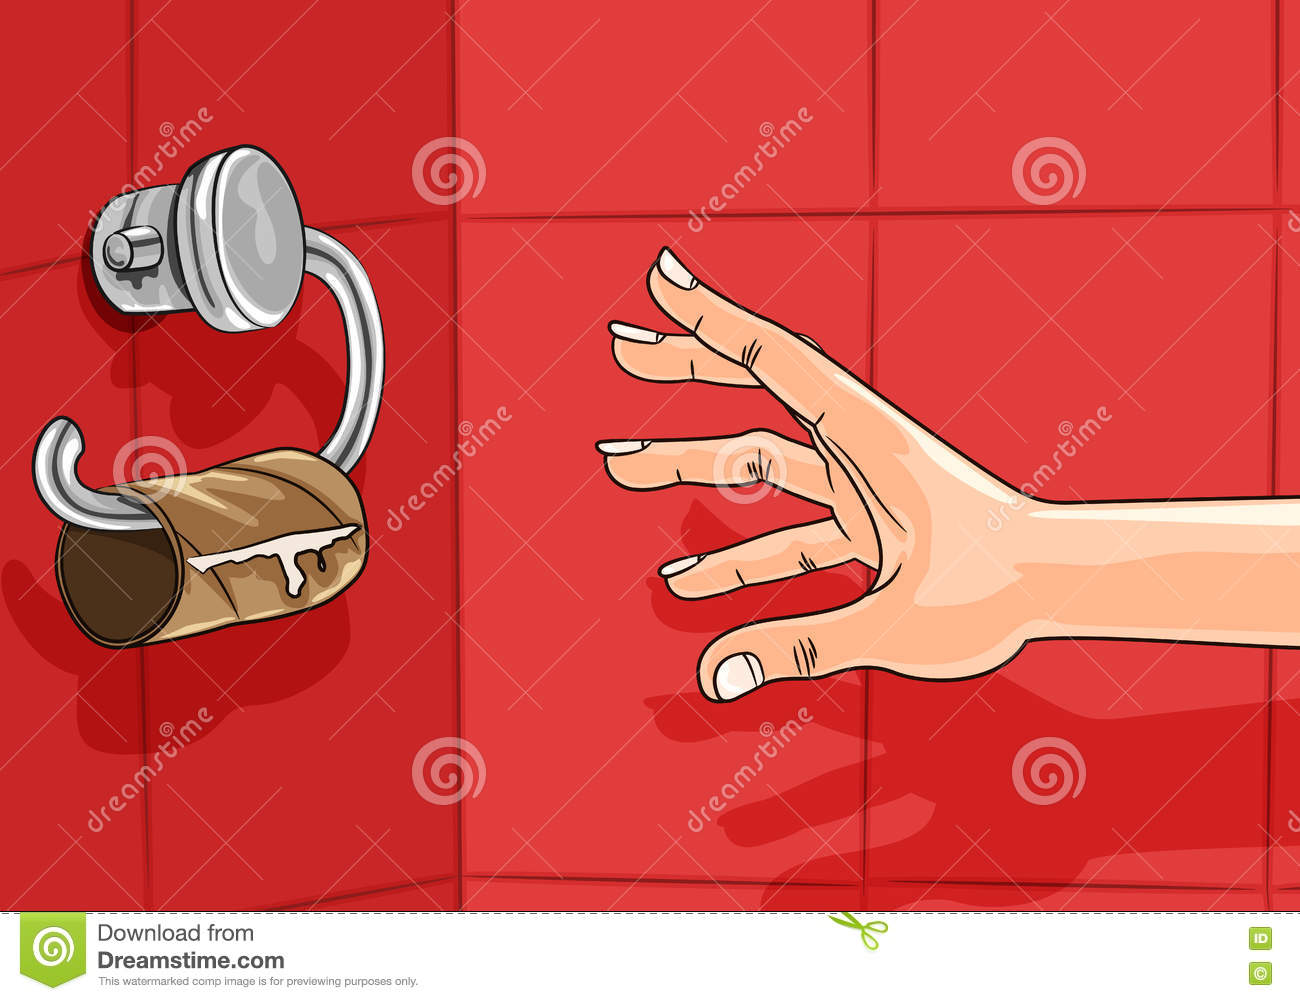 Hand Reaching For Empty Toilet Paper Roll Cartoon Vector